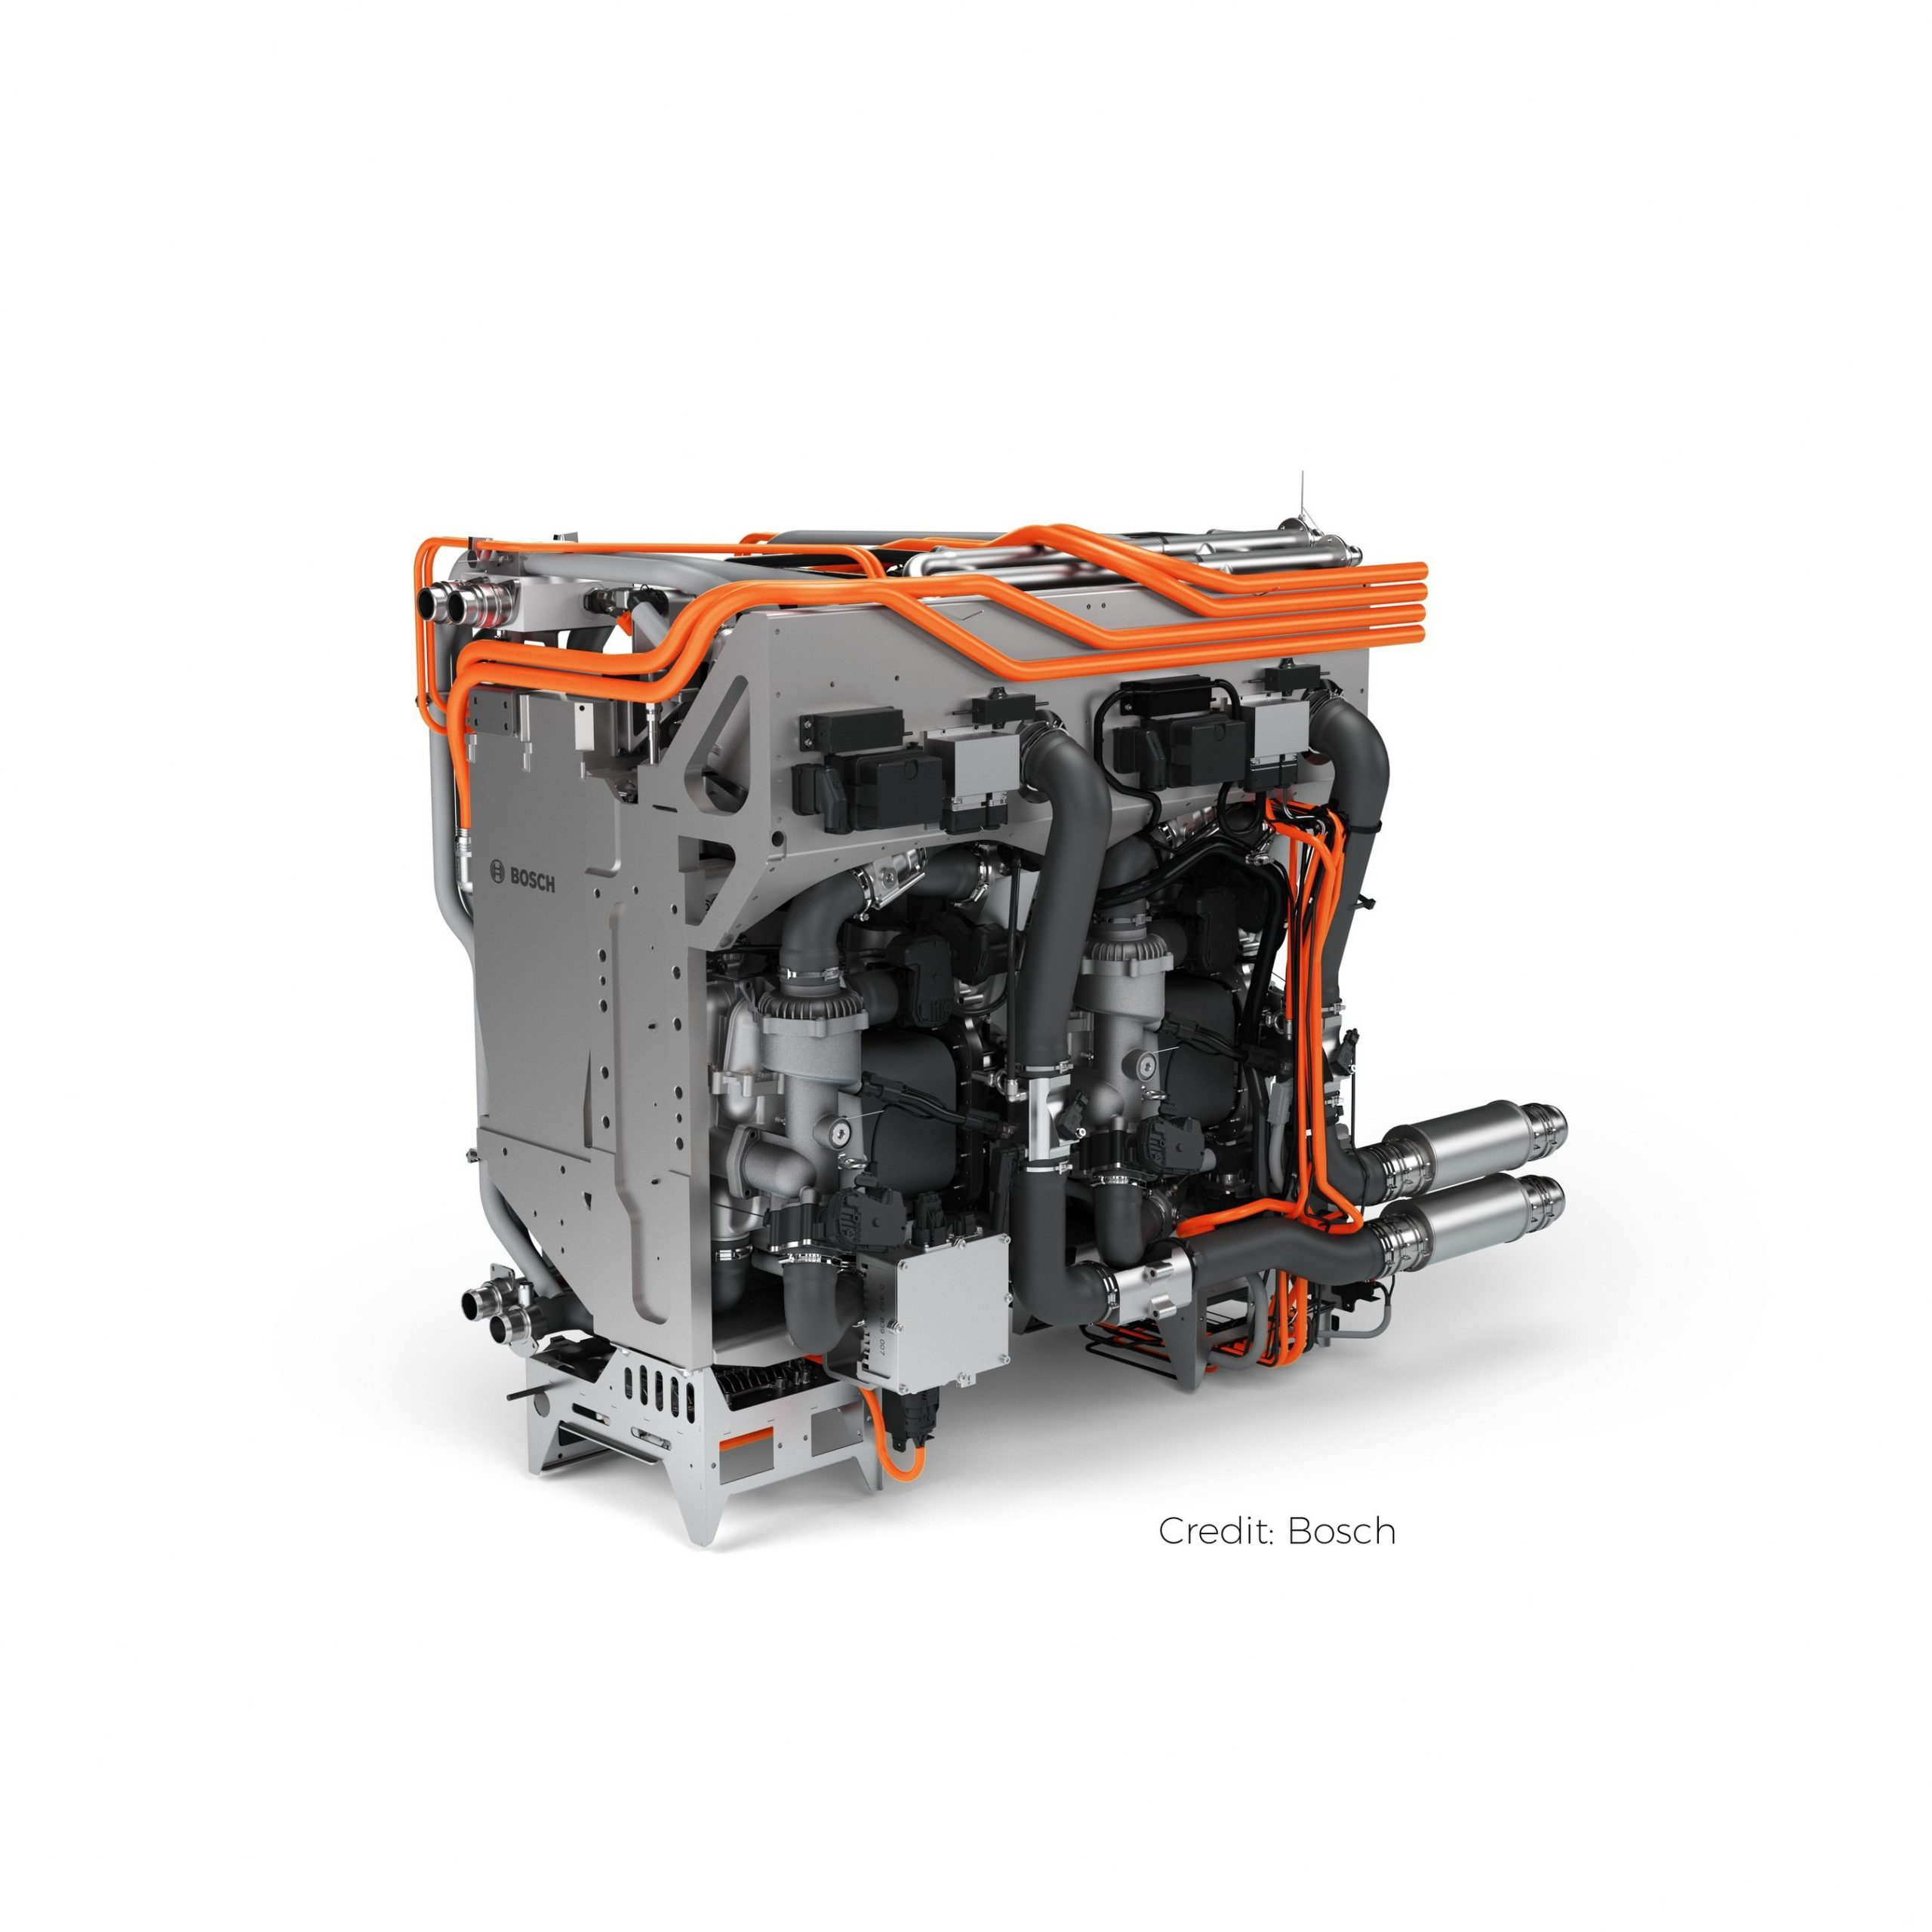 Nikola Announces Strategic Agreements With Bosch For Fuel-cell Power Modules Manufacturing